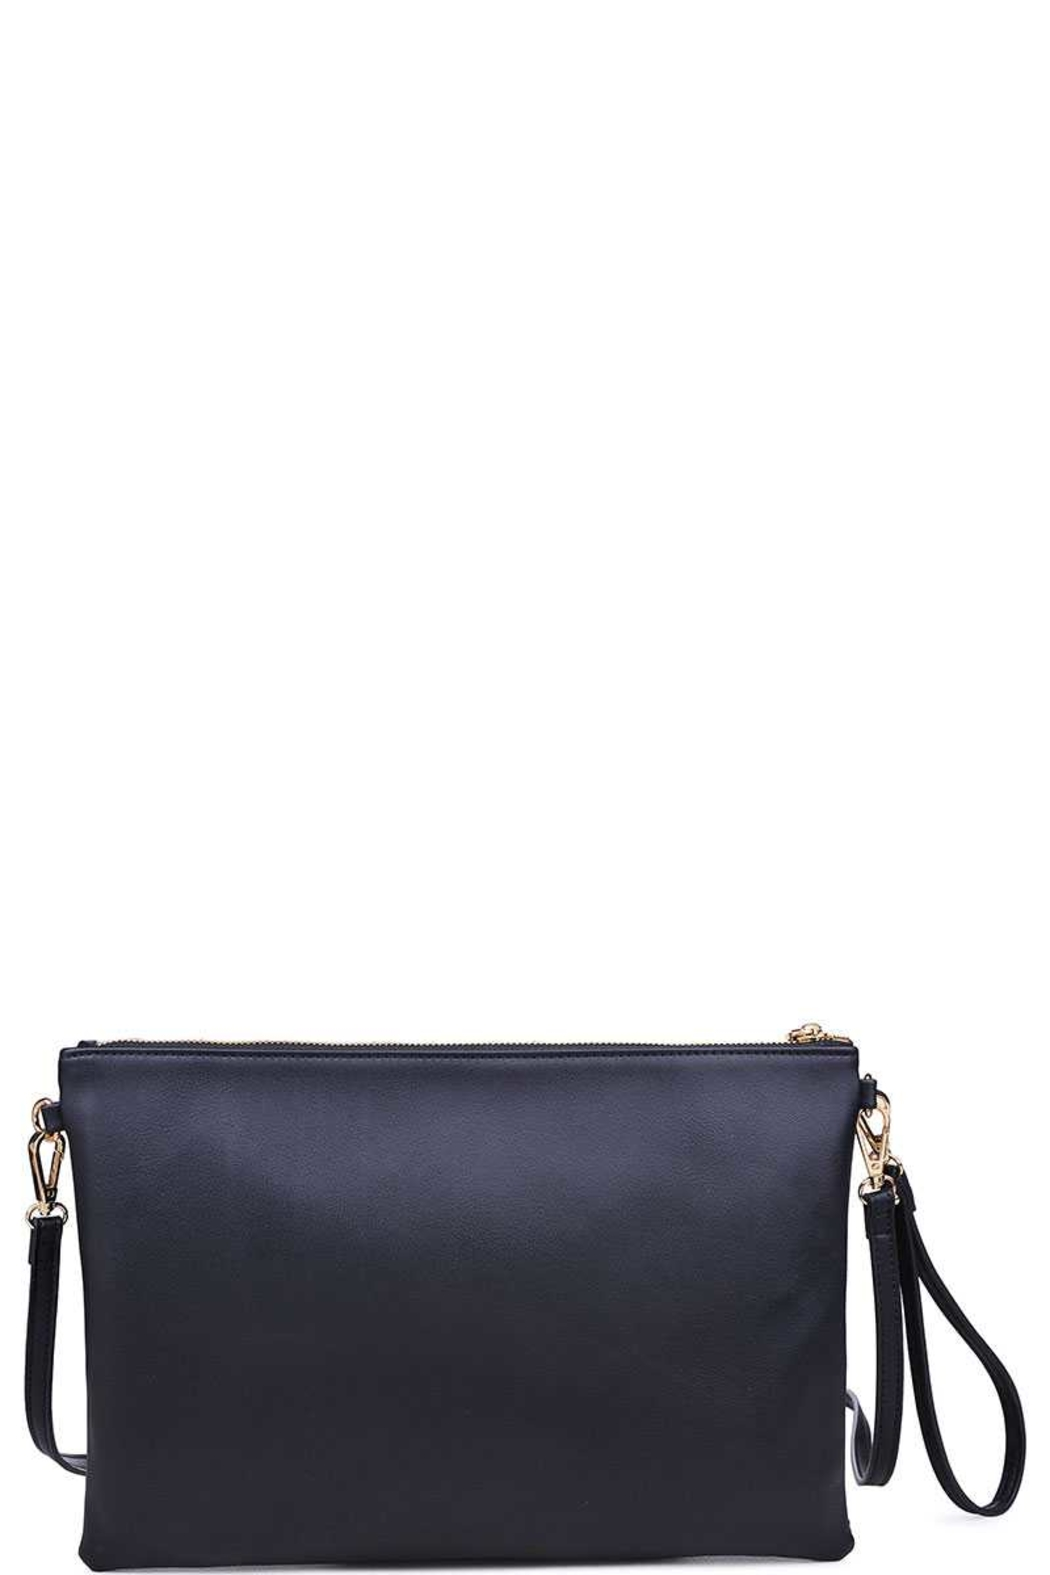 Urban Expressions Papillon Clutch - Front Full Image